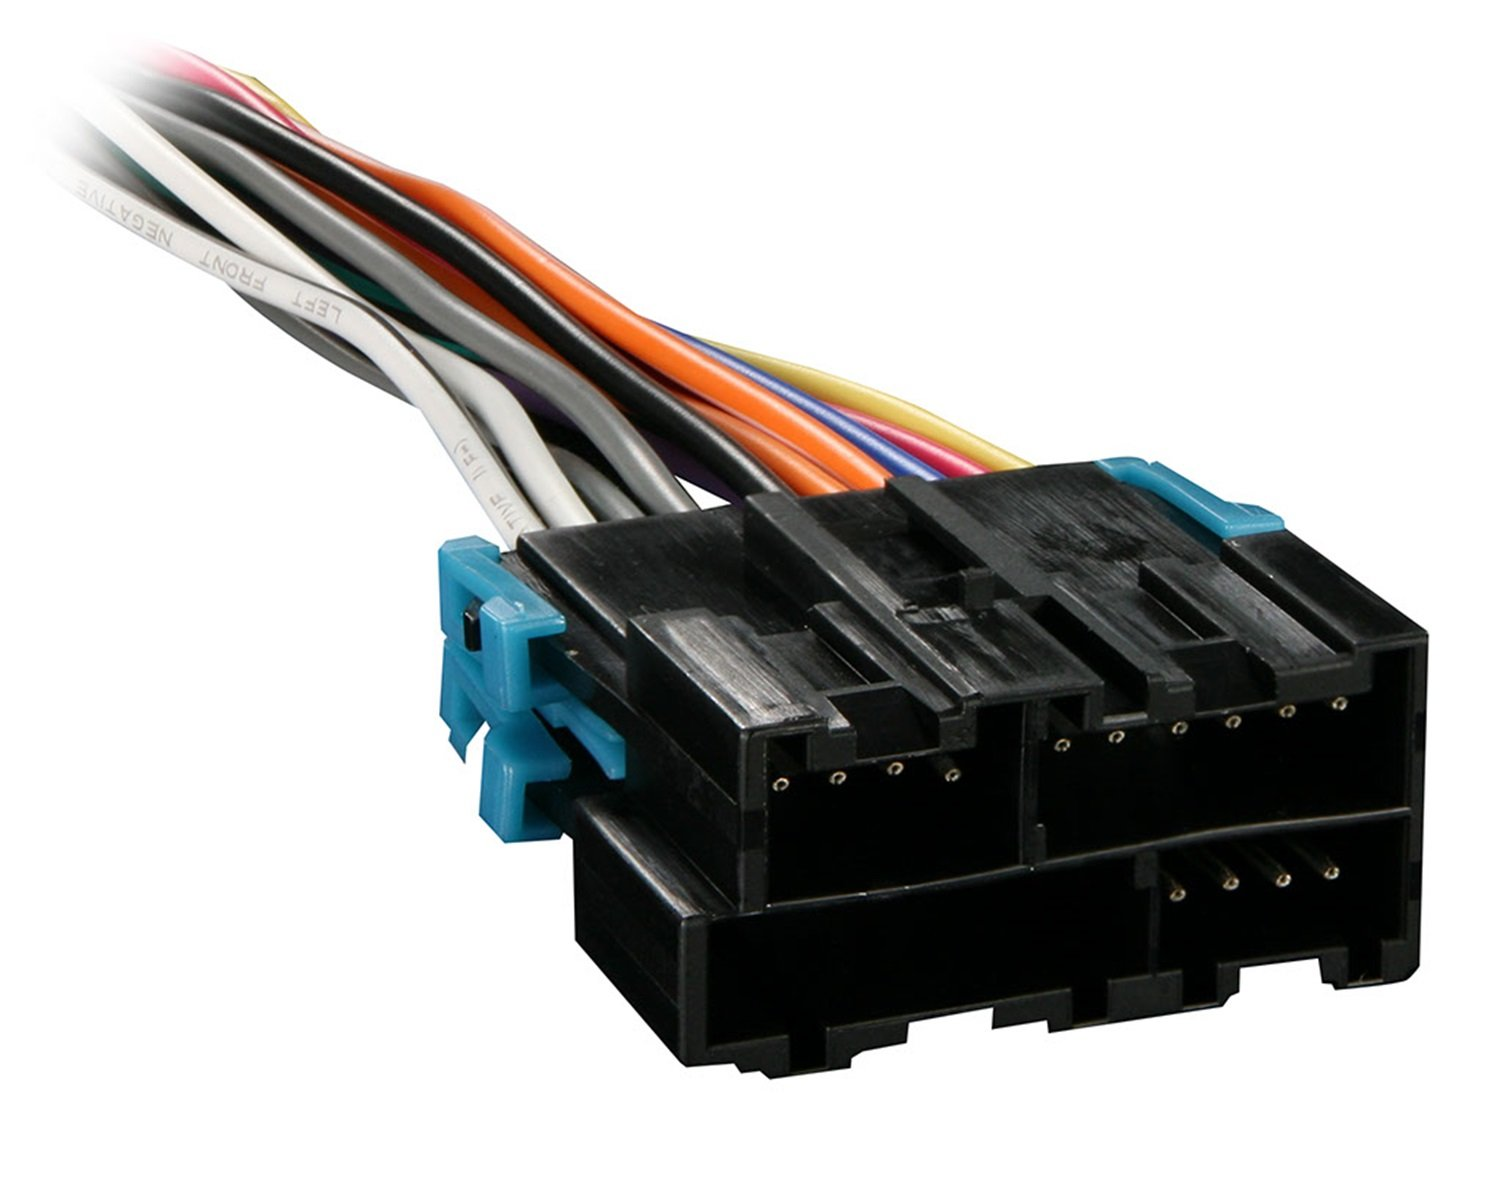 61 CwjZt1hL._SL1500_ radio wiring harnesses amazon com snap on wire harness adapter at edmiracle.co